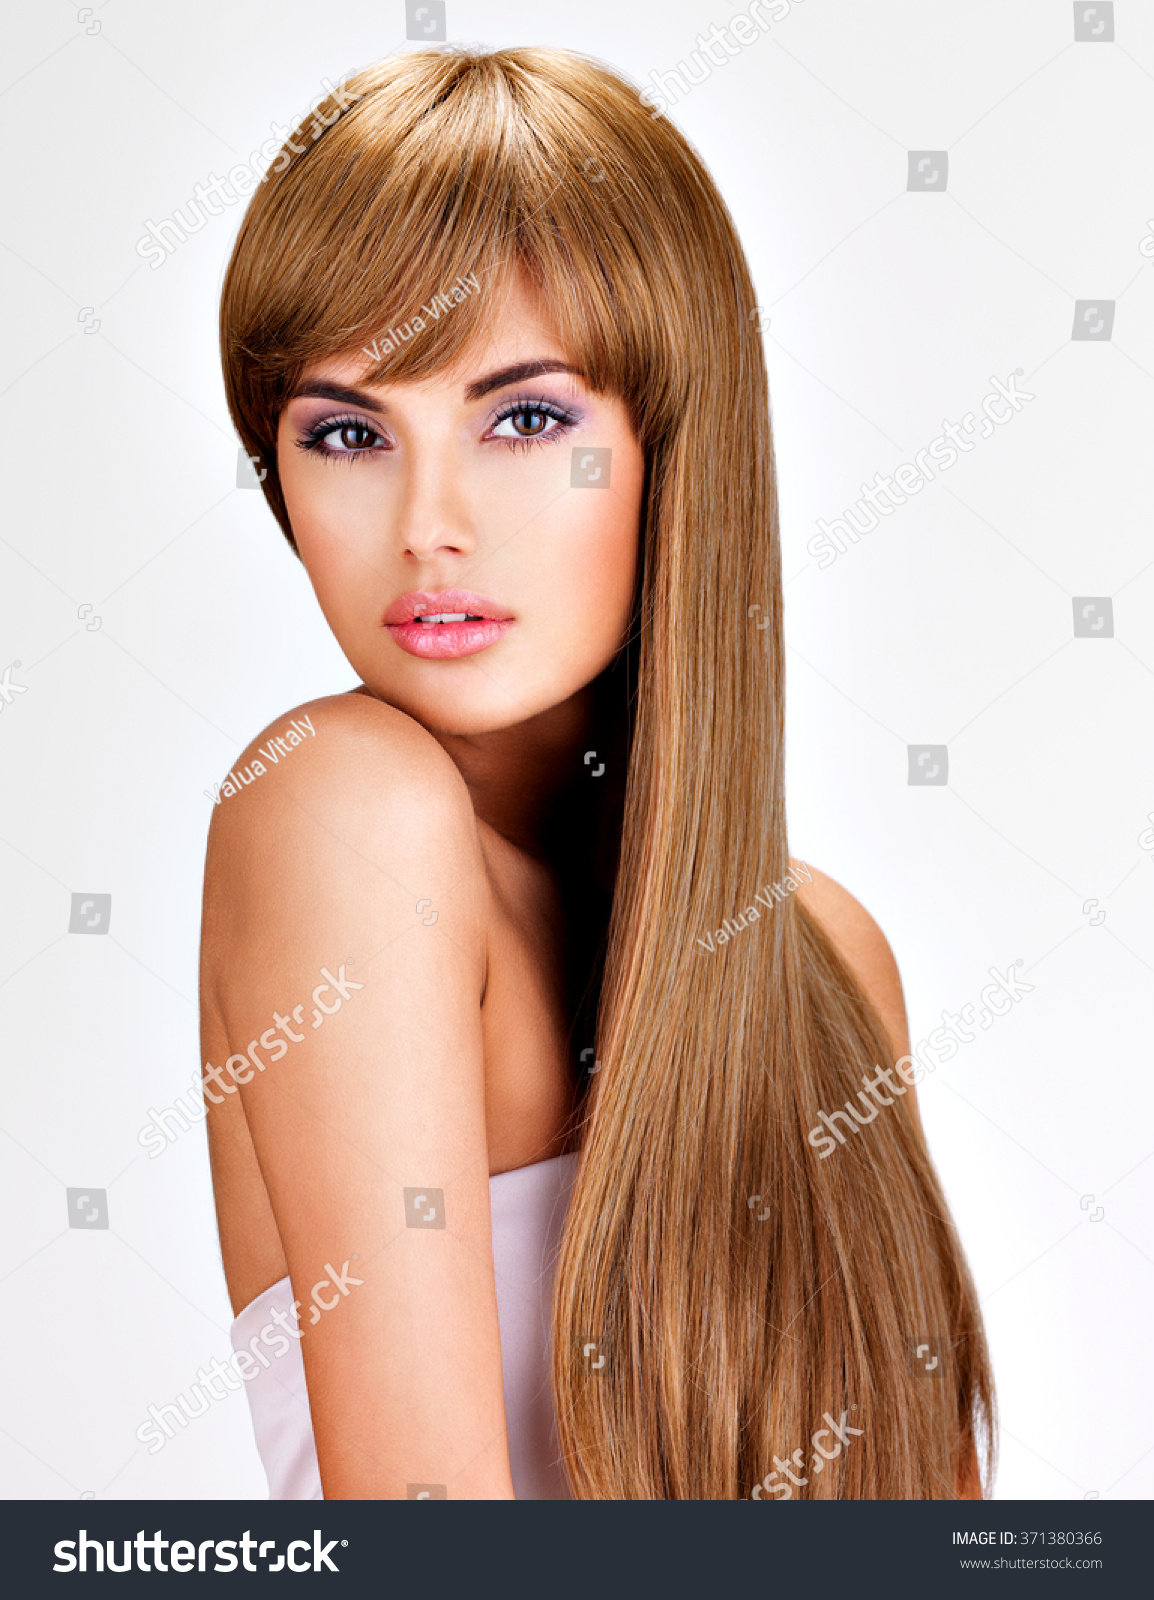 Portrait Of A Beautiful Indian Woman With Long Straight Brown Hair